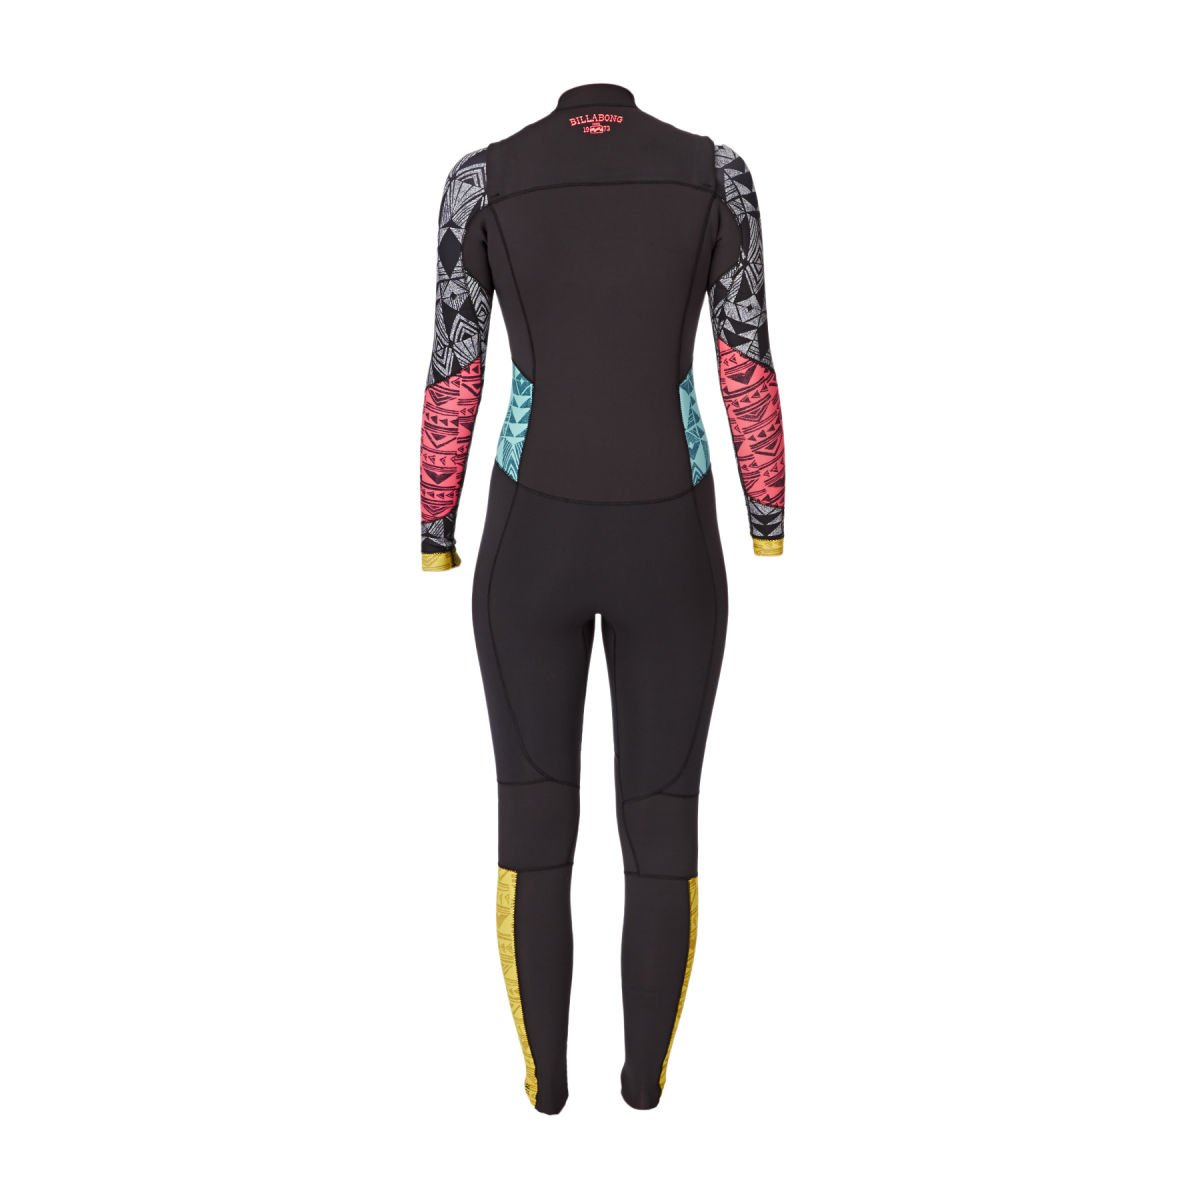 145c98f81d Amazon.com   Billabong Ladies 3 2mm Salty Days DayZ Chest Zip GBS Wetsuit  in Seafoam Q43G03 Sizes- - Ladies 6   Sports   Outdoors